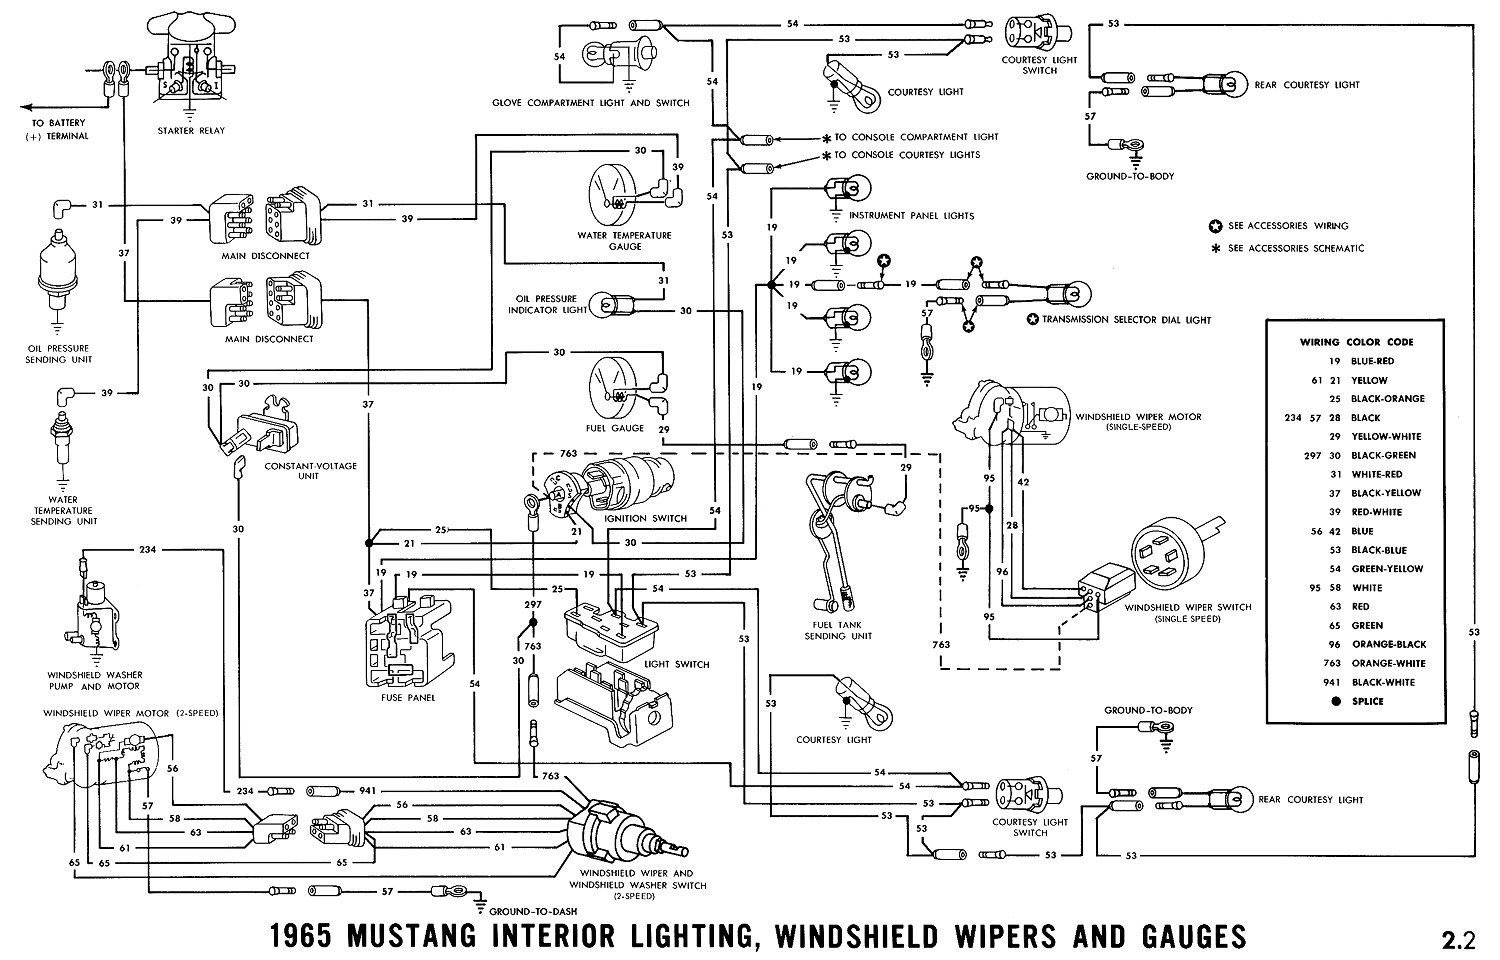 1965g 65 mustang wiring diagram 1965 mustang alternator wiring \u2022 wiring 65 mustang fuse box location at eliteediting.co